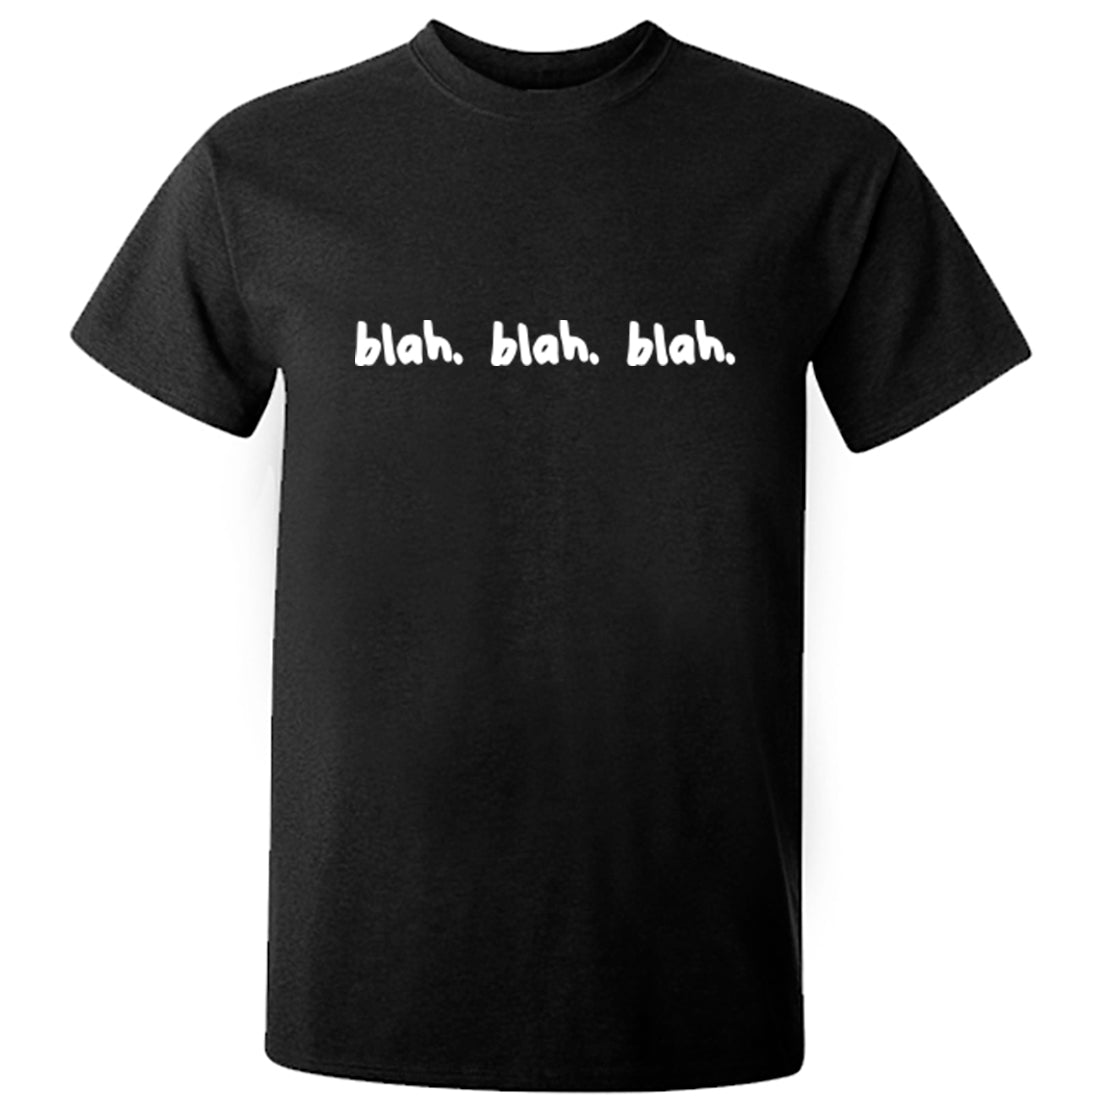 Blah Blah Blah Unisex Fit T-Shirt K2040 - Illustrated Identity Ltd.